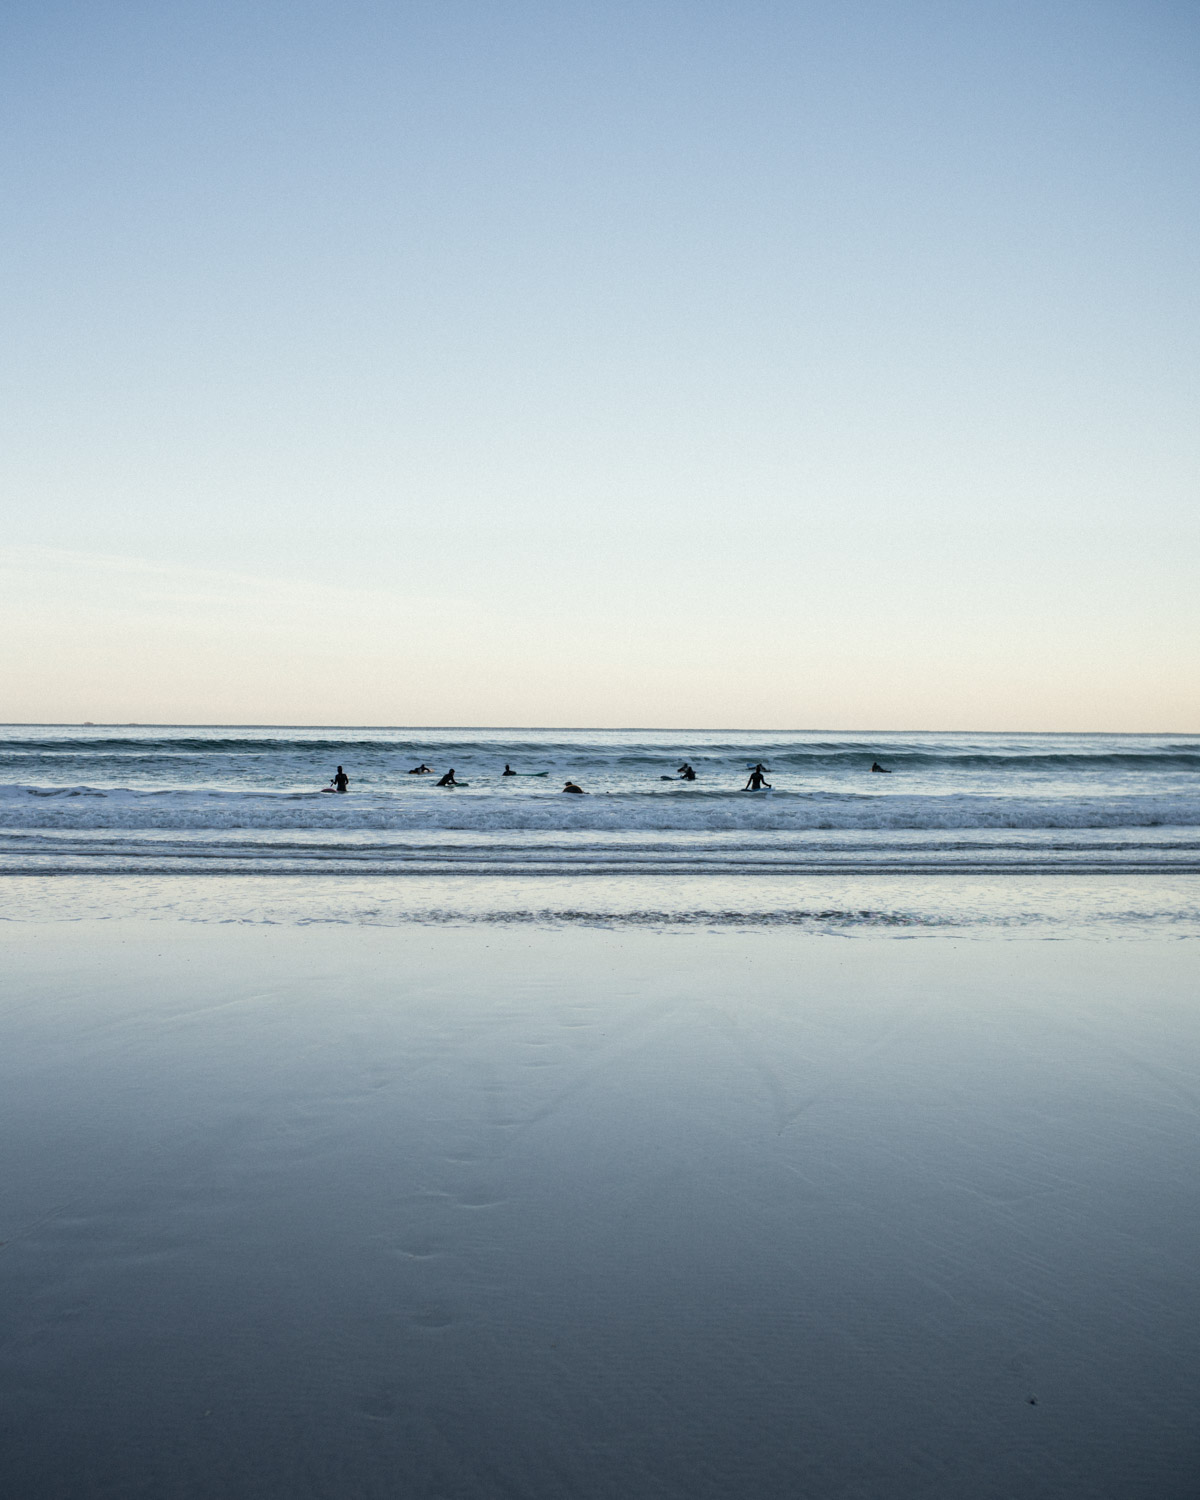 A group of amateur surfers are finishing a lesson on the spot of Flakstad